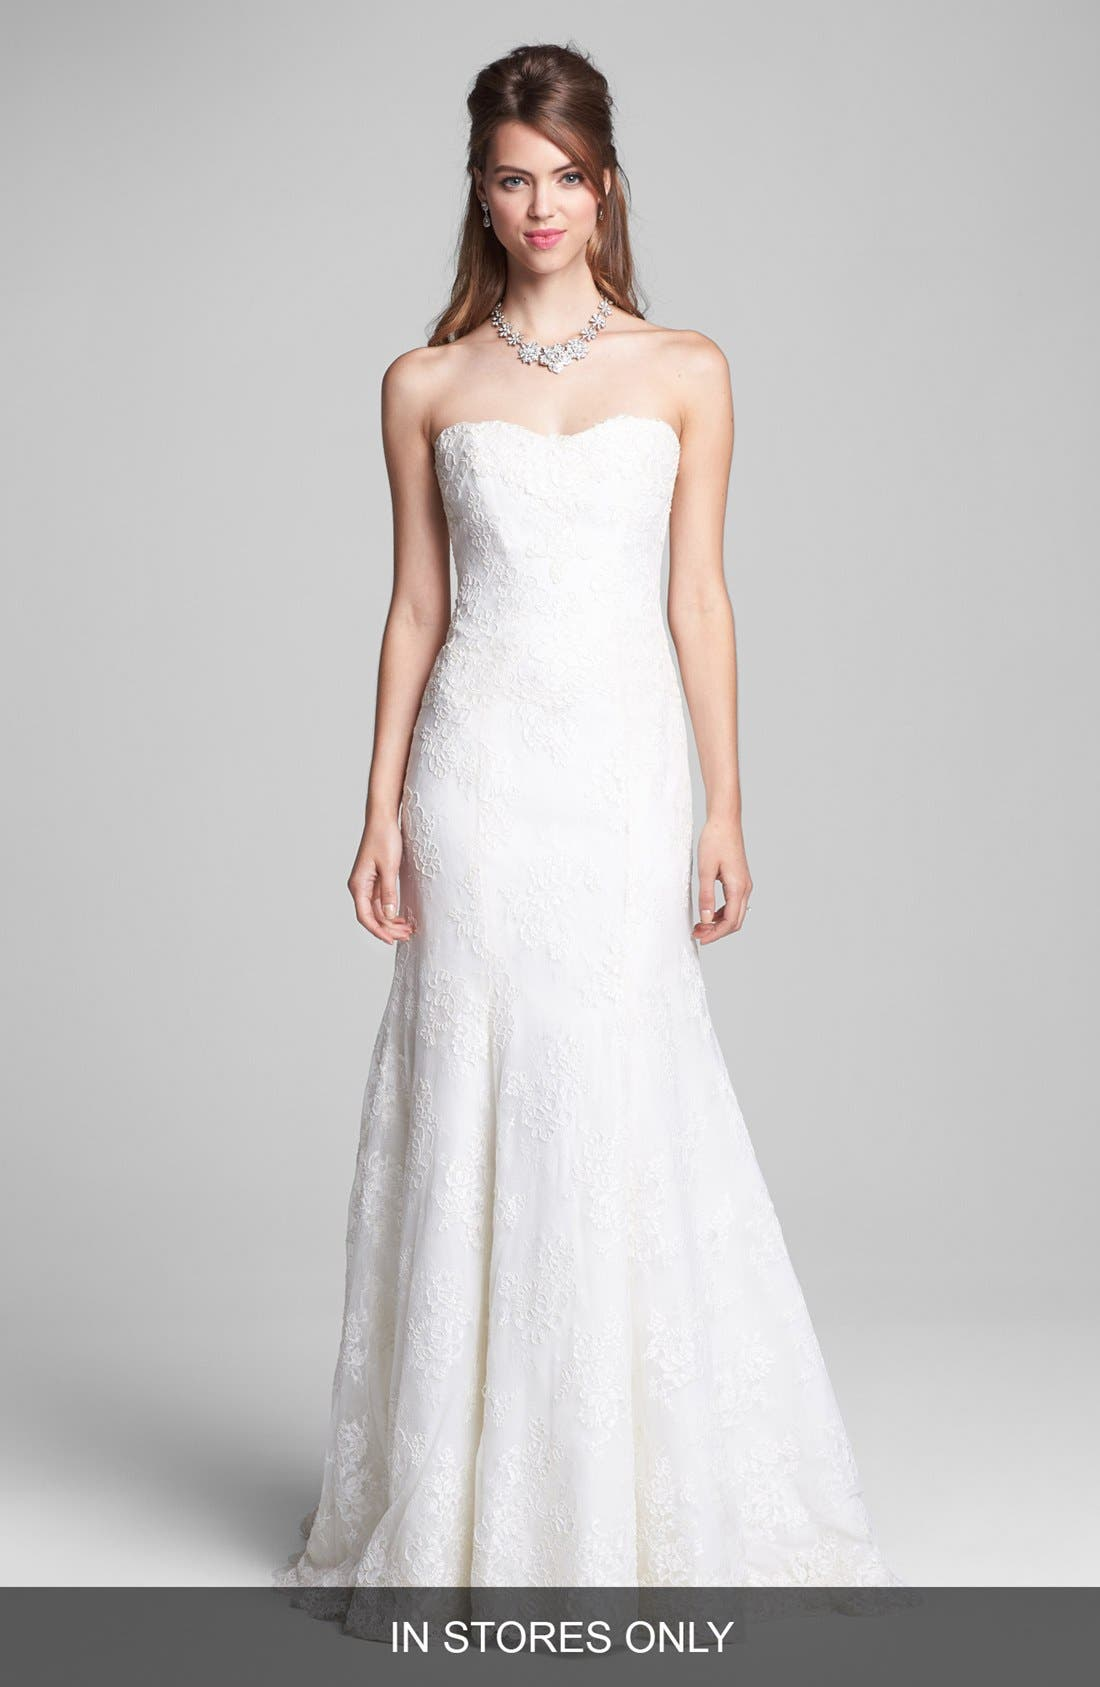 Alternate Image 1 Selected - BLISS Monique Lhuillier Embroidered Lace Trumpet Dress (In Stores Only)